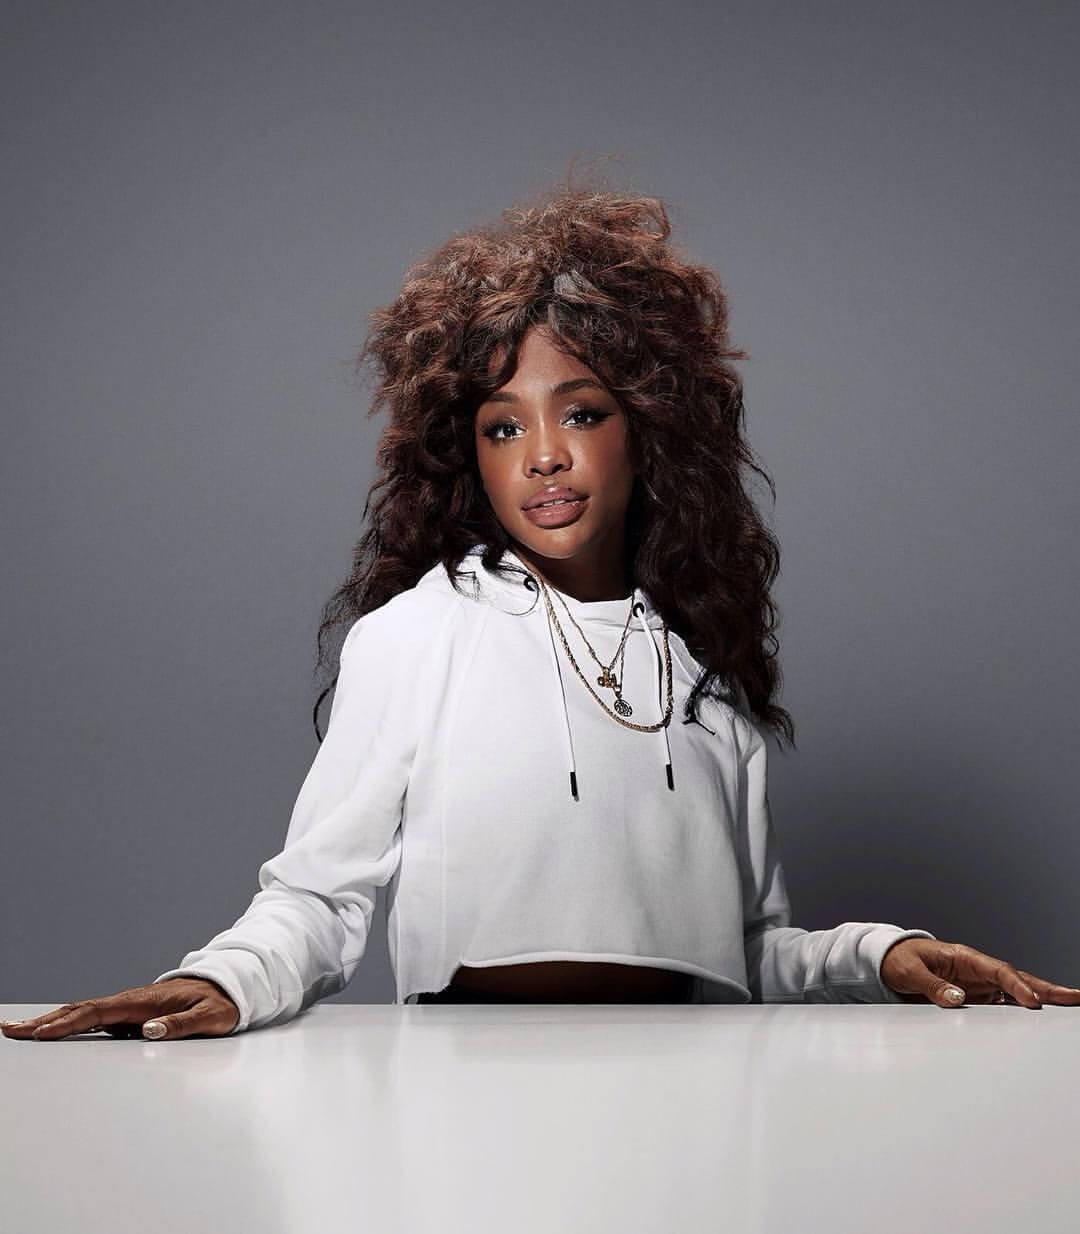 Sza awesome picture